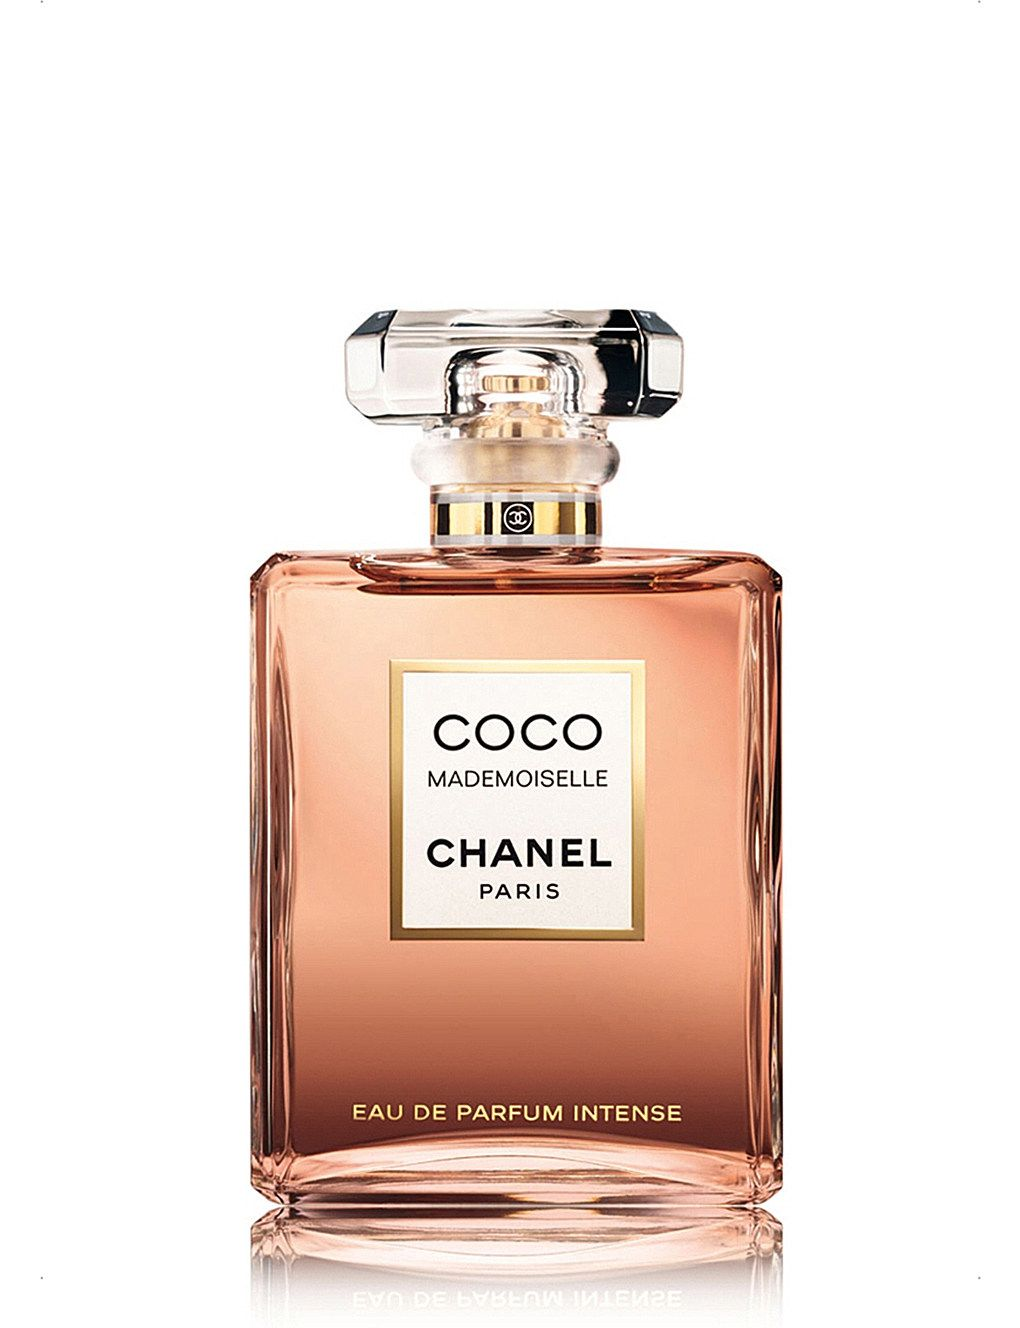 Chanel Coco Mademoiselle Eau De Parfum Intense 50ml In 2019